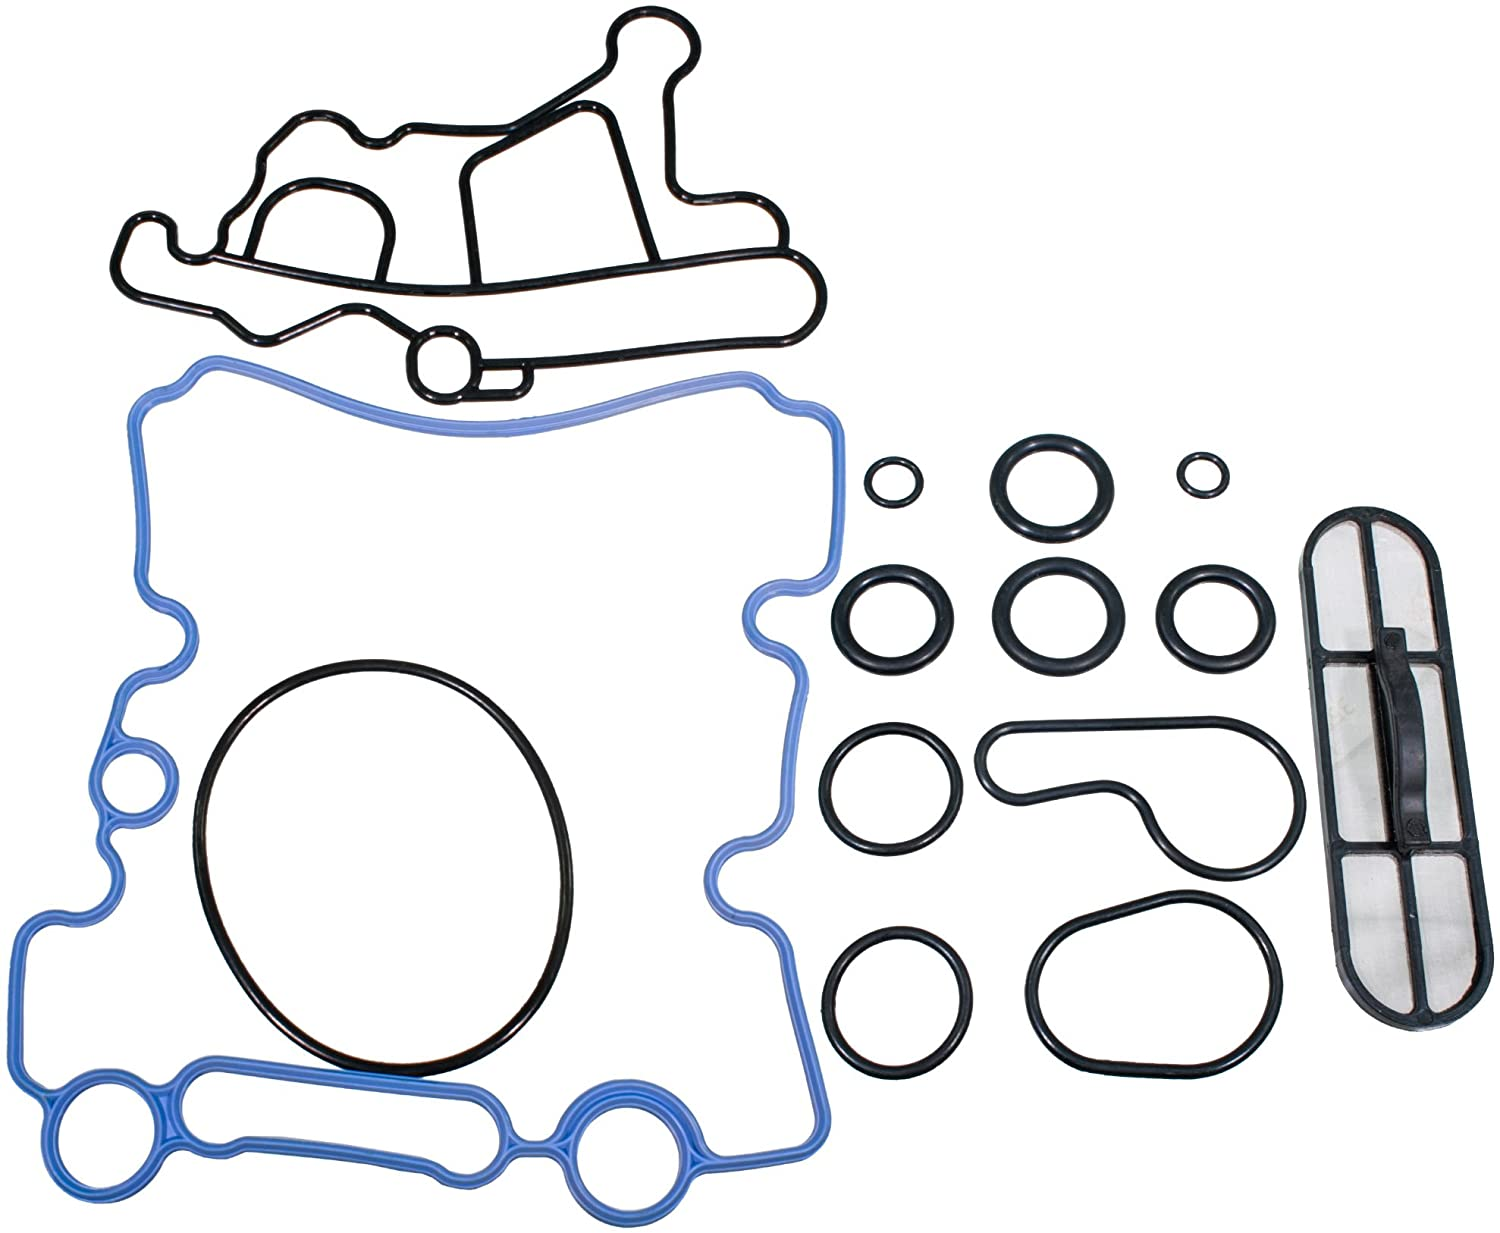 APDTY 133924 Engine Oil Cooler Gasket & Oil Screen Filter Kit Fits 2003-2010 Ford 6.0L Diesel (Replaces 3C3Z-6C683-AB, 3C3Z-6A642-CA, 3C3Z9N693A)